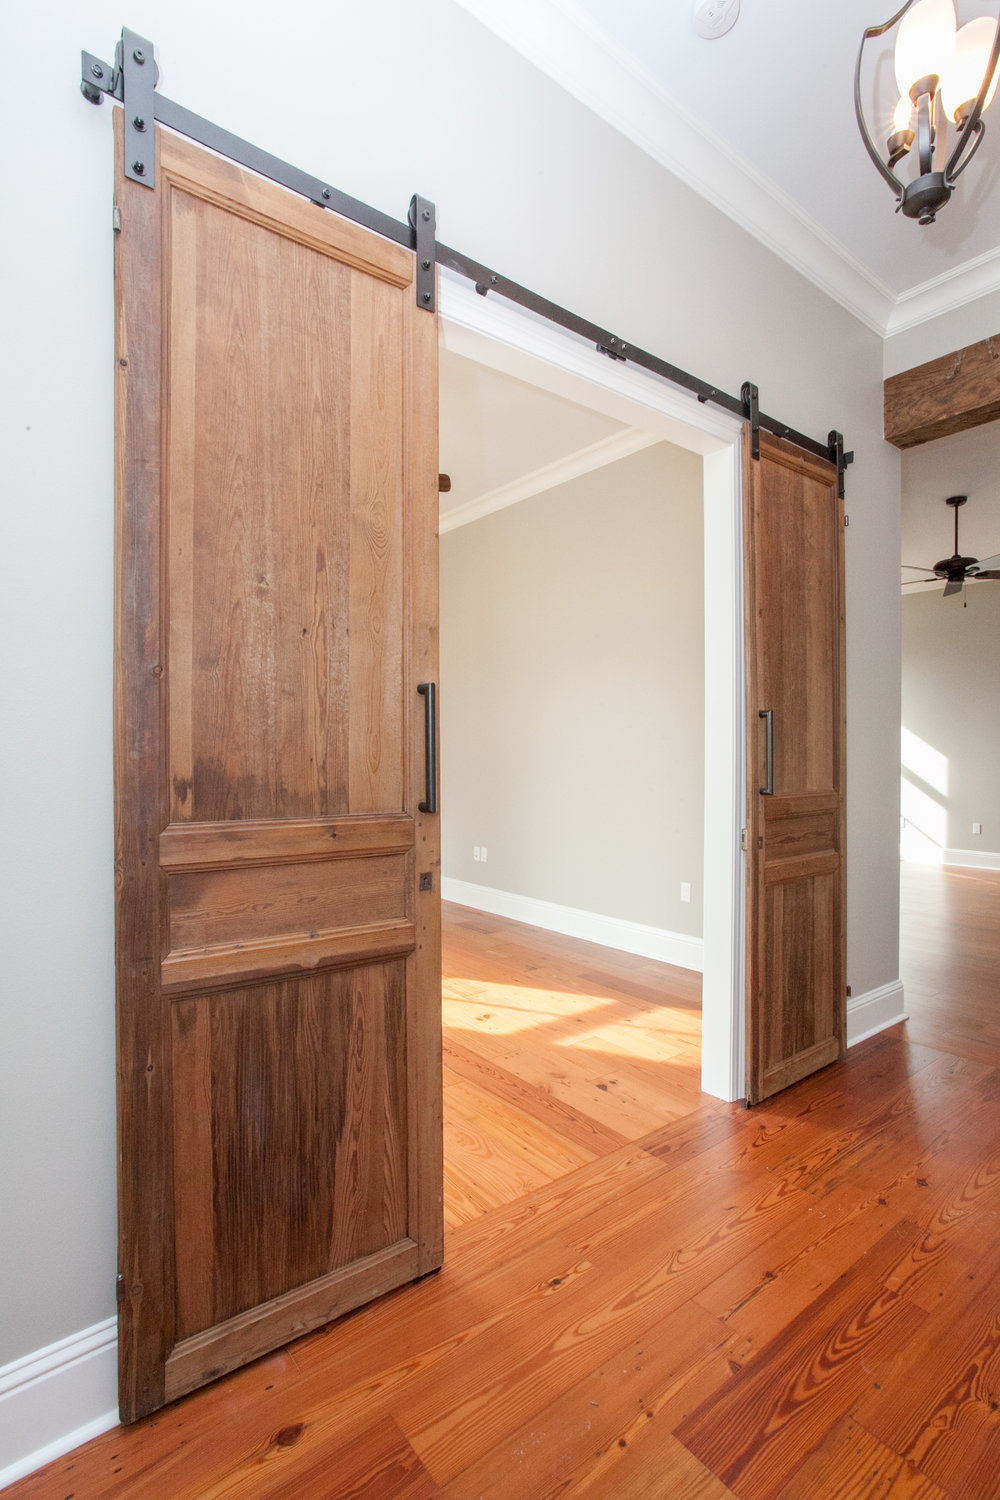 antique barn doors on sliders